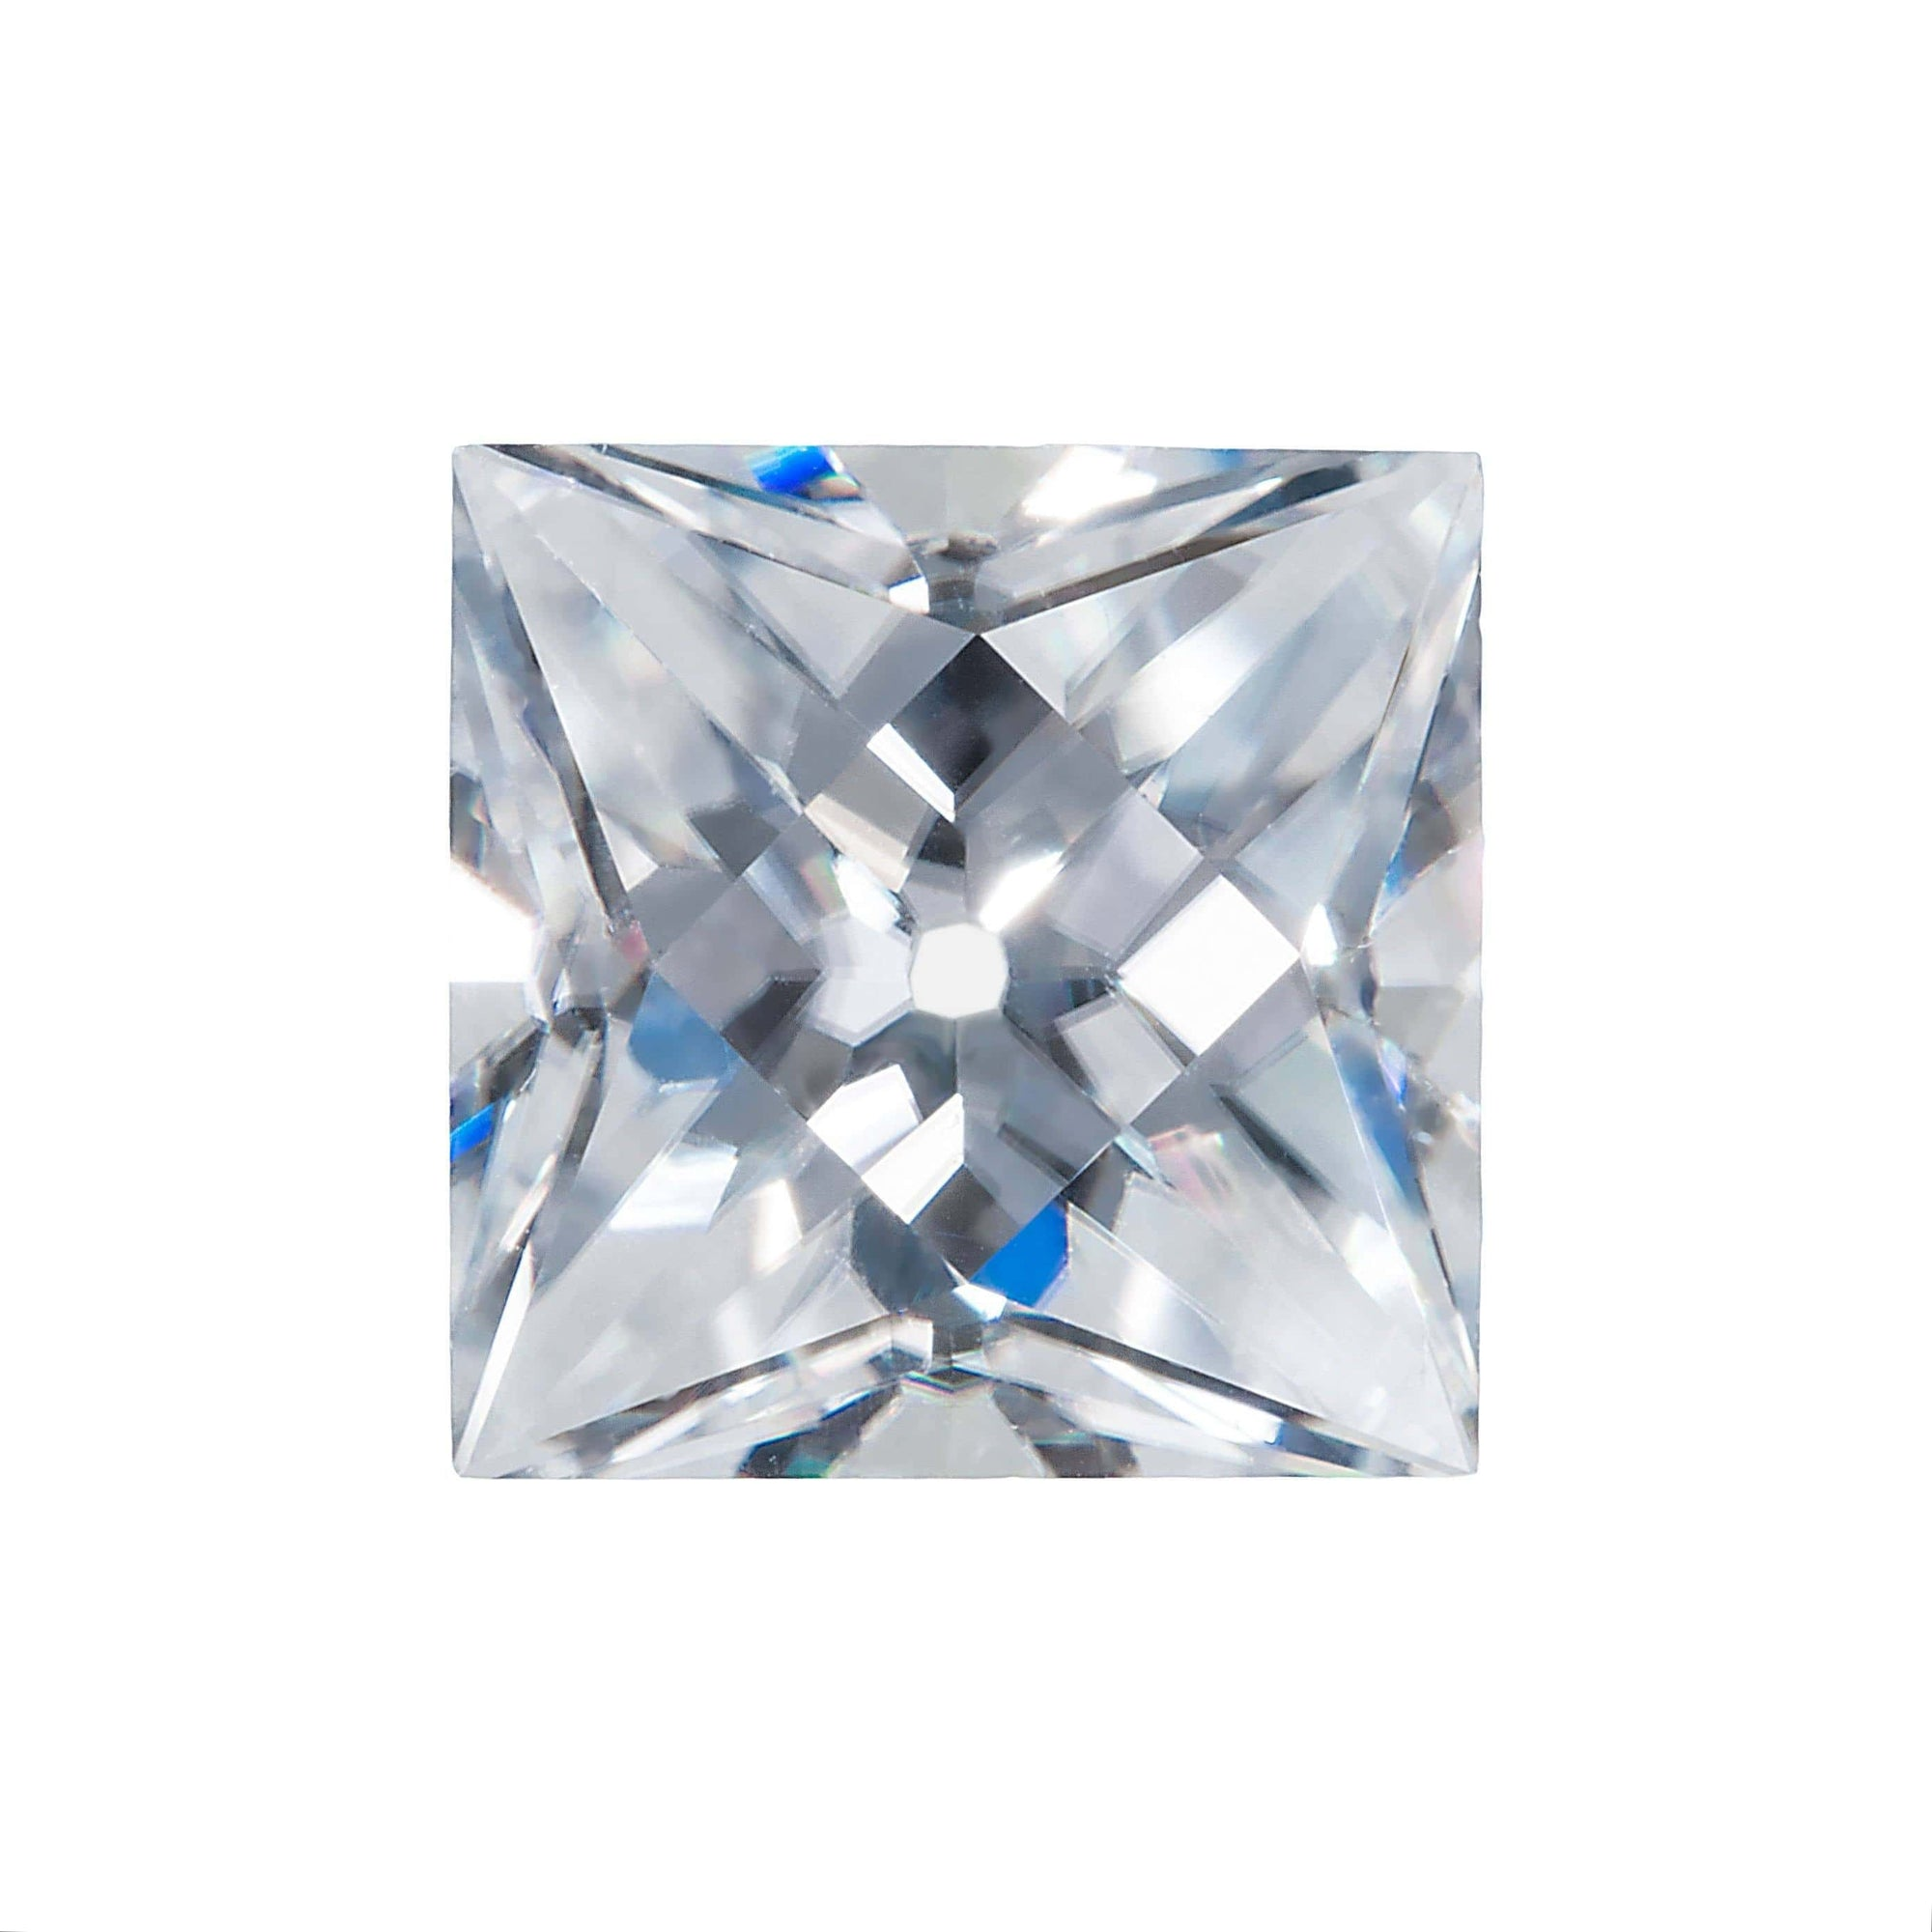 Harro Gem Princess Moissanite Loose Moissanite Harro Gem